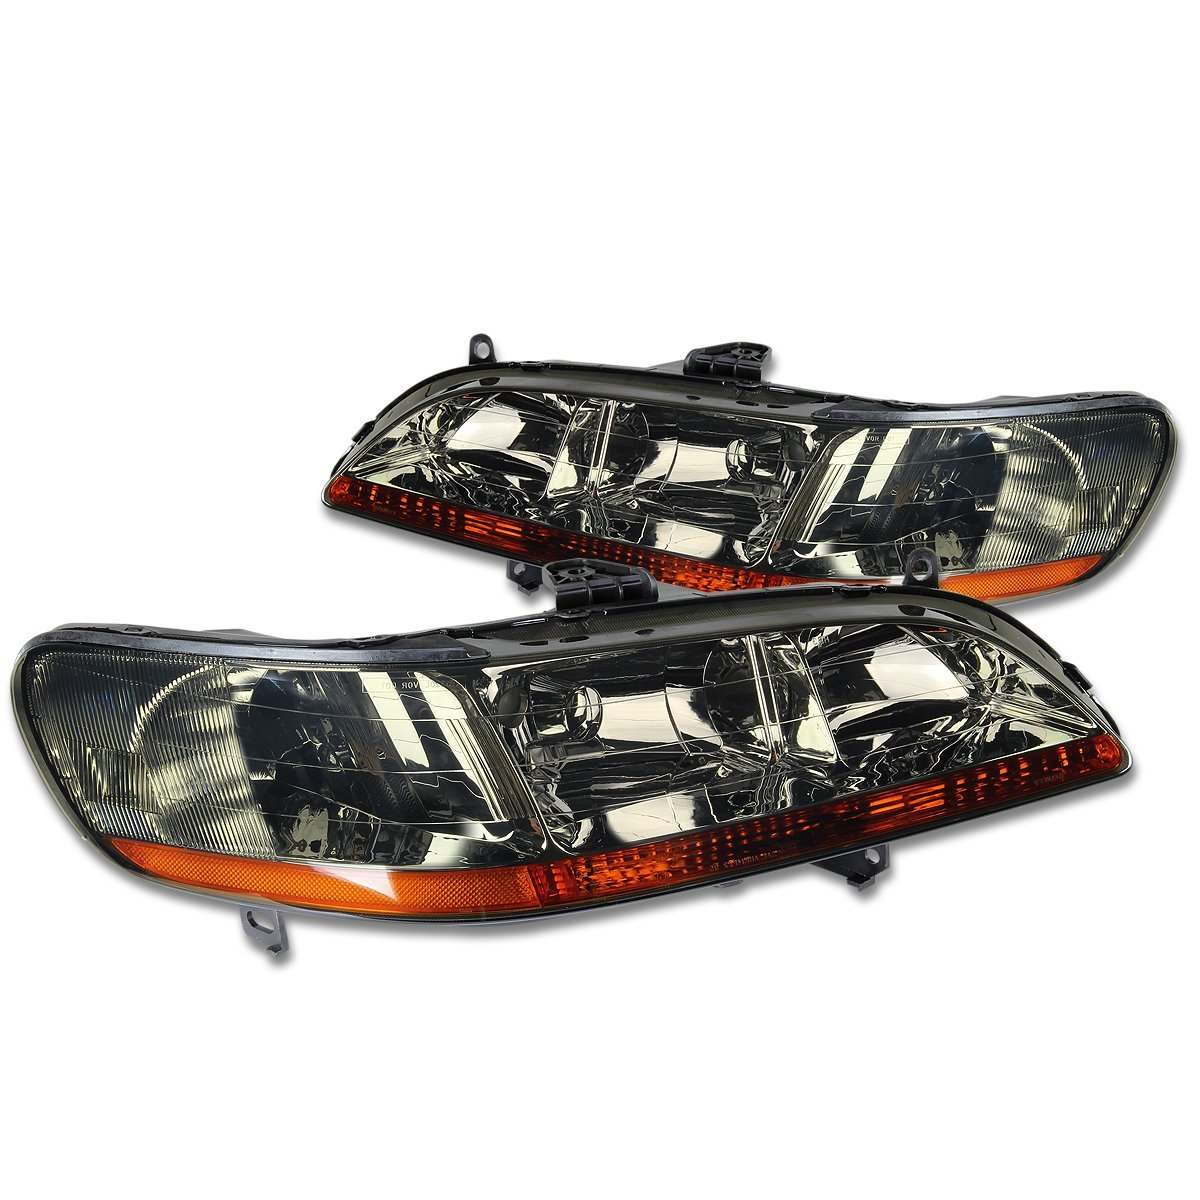 DNA MOTORING HL-OH-HA98-SM-AB Headlight Assembly, Driver and Passenger Side,Smoked amber